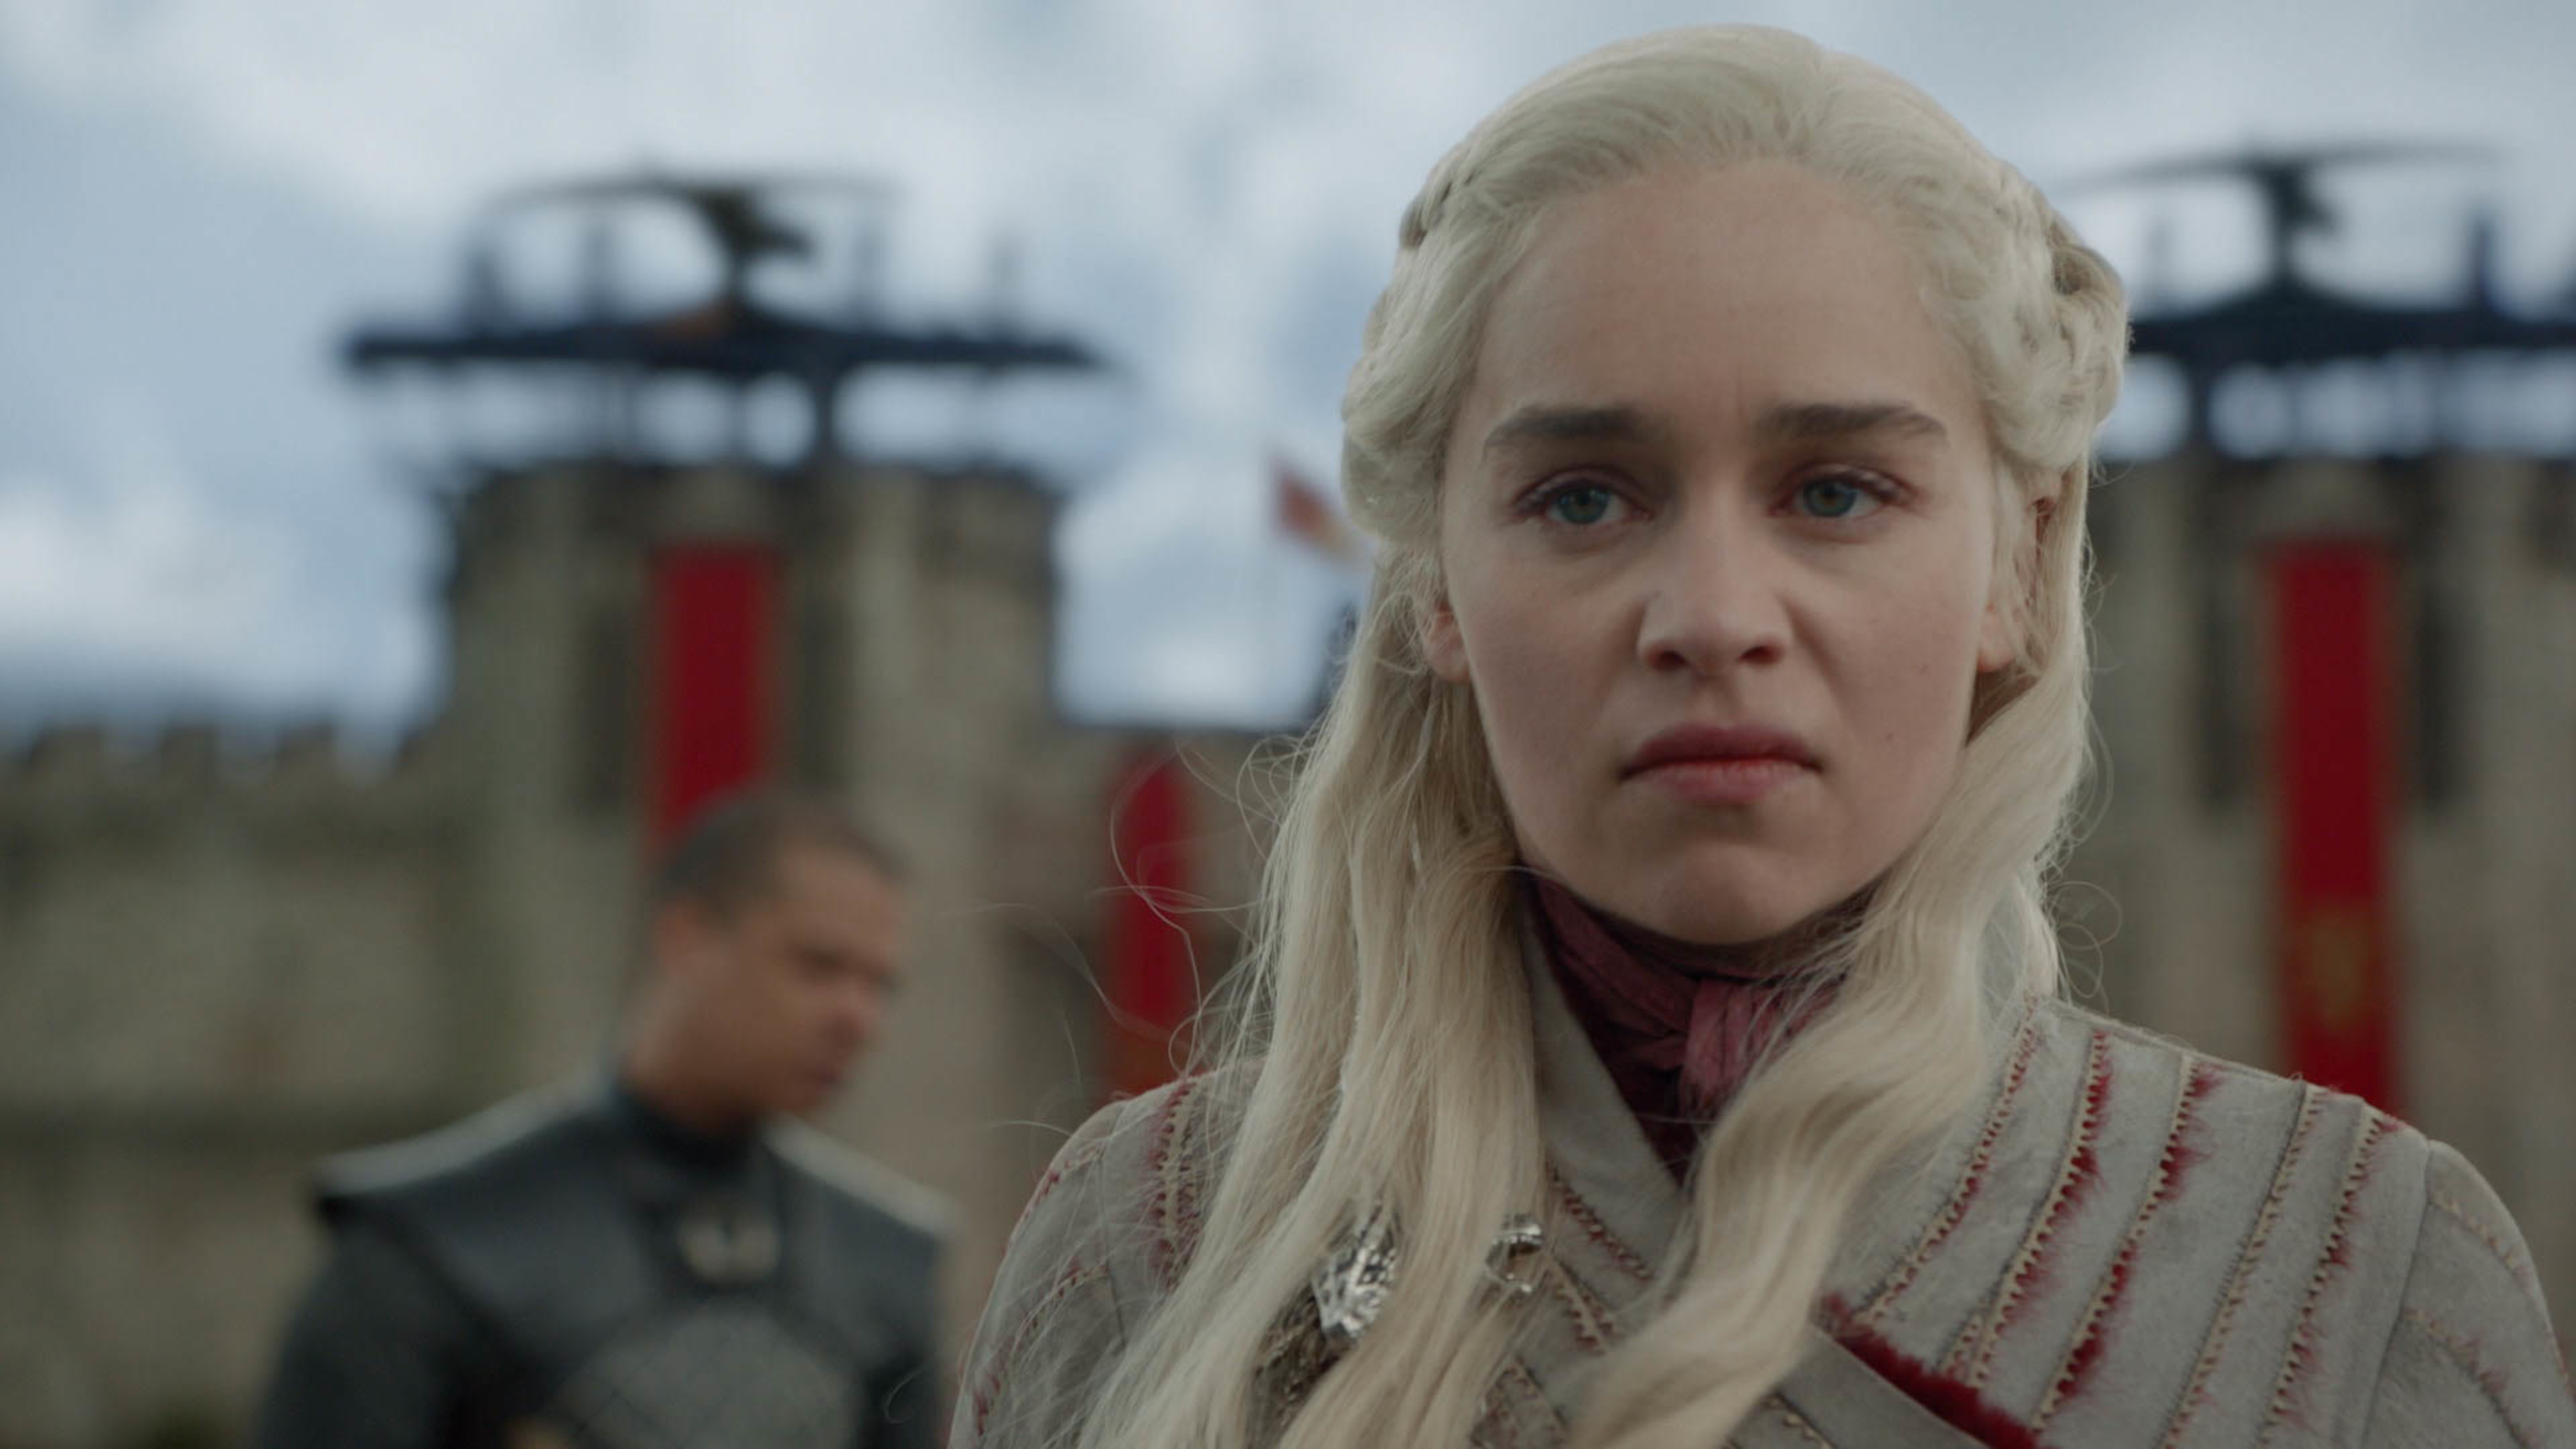 Who will survive? Betting series begins again for final 'Game of Thrones' episode - Fox News